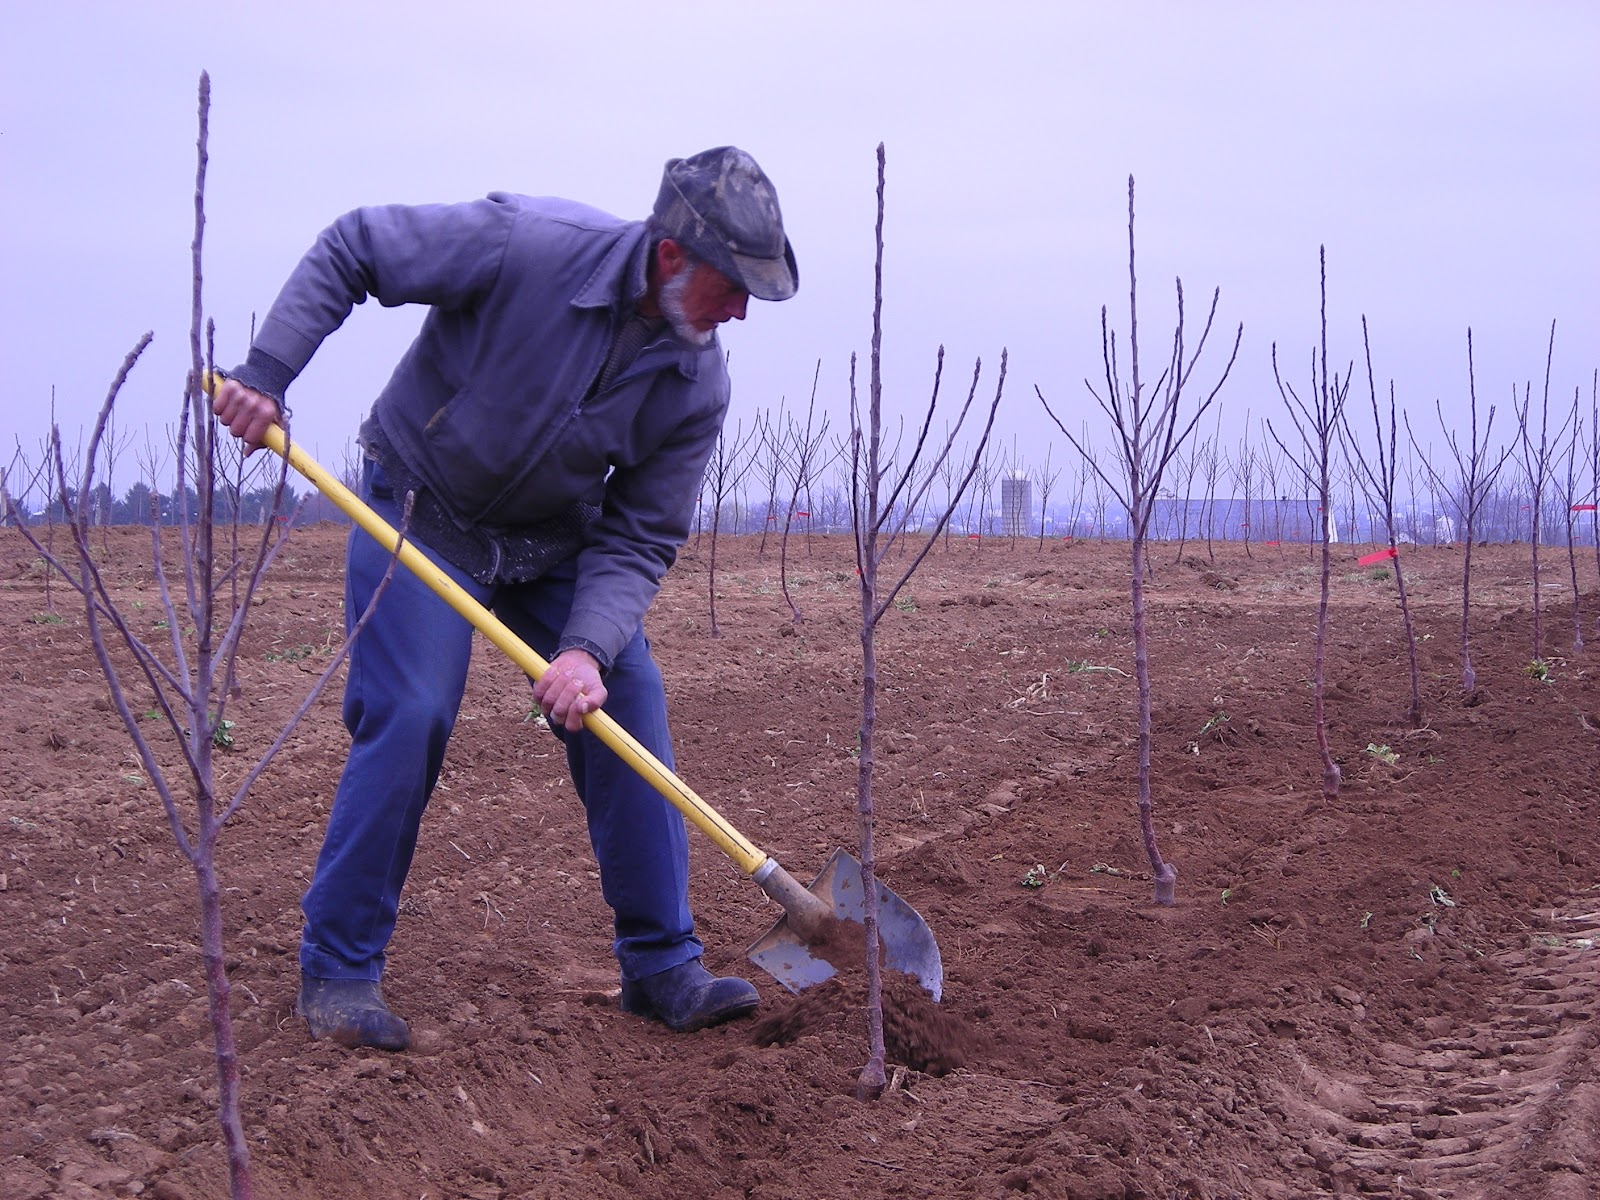 Habits of Growth and Productivity - Journal of an Orchardist